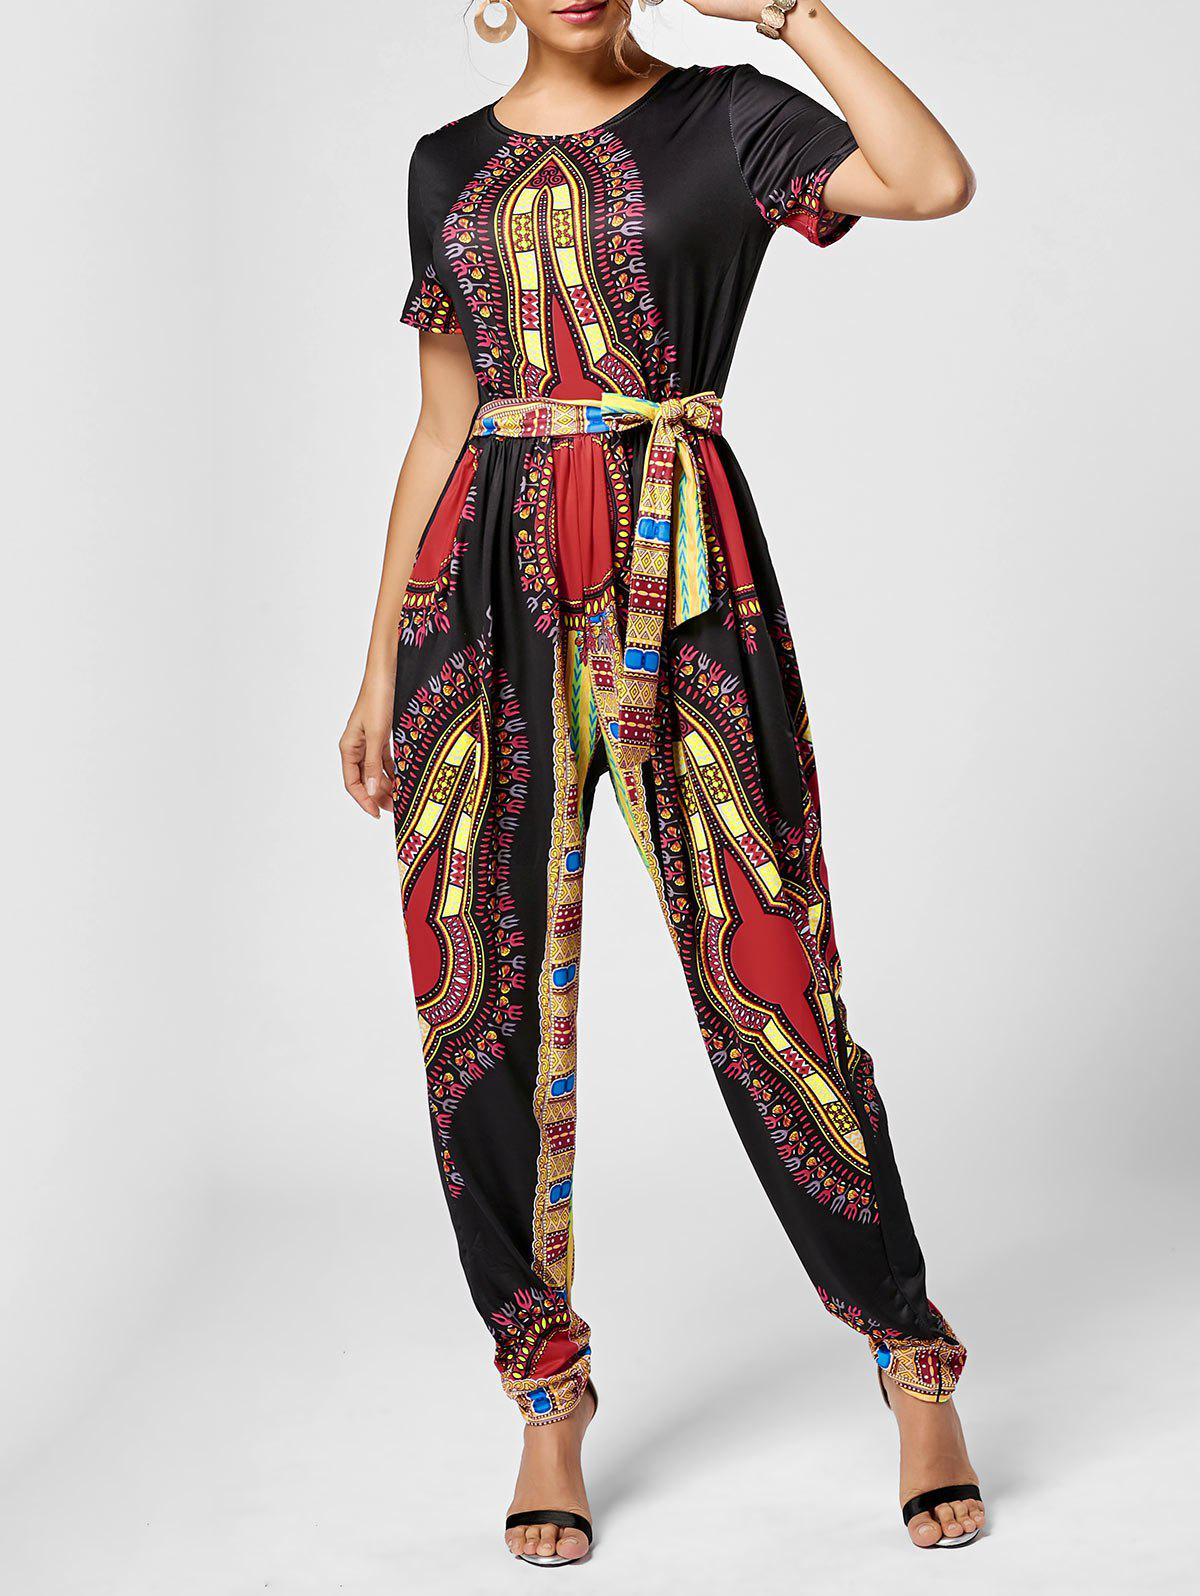 Tribe Print Combinaison Belted - Noir S